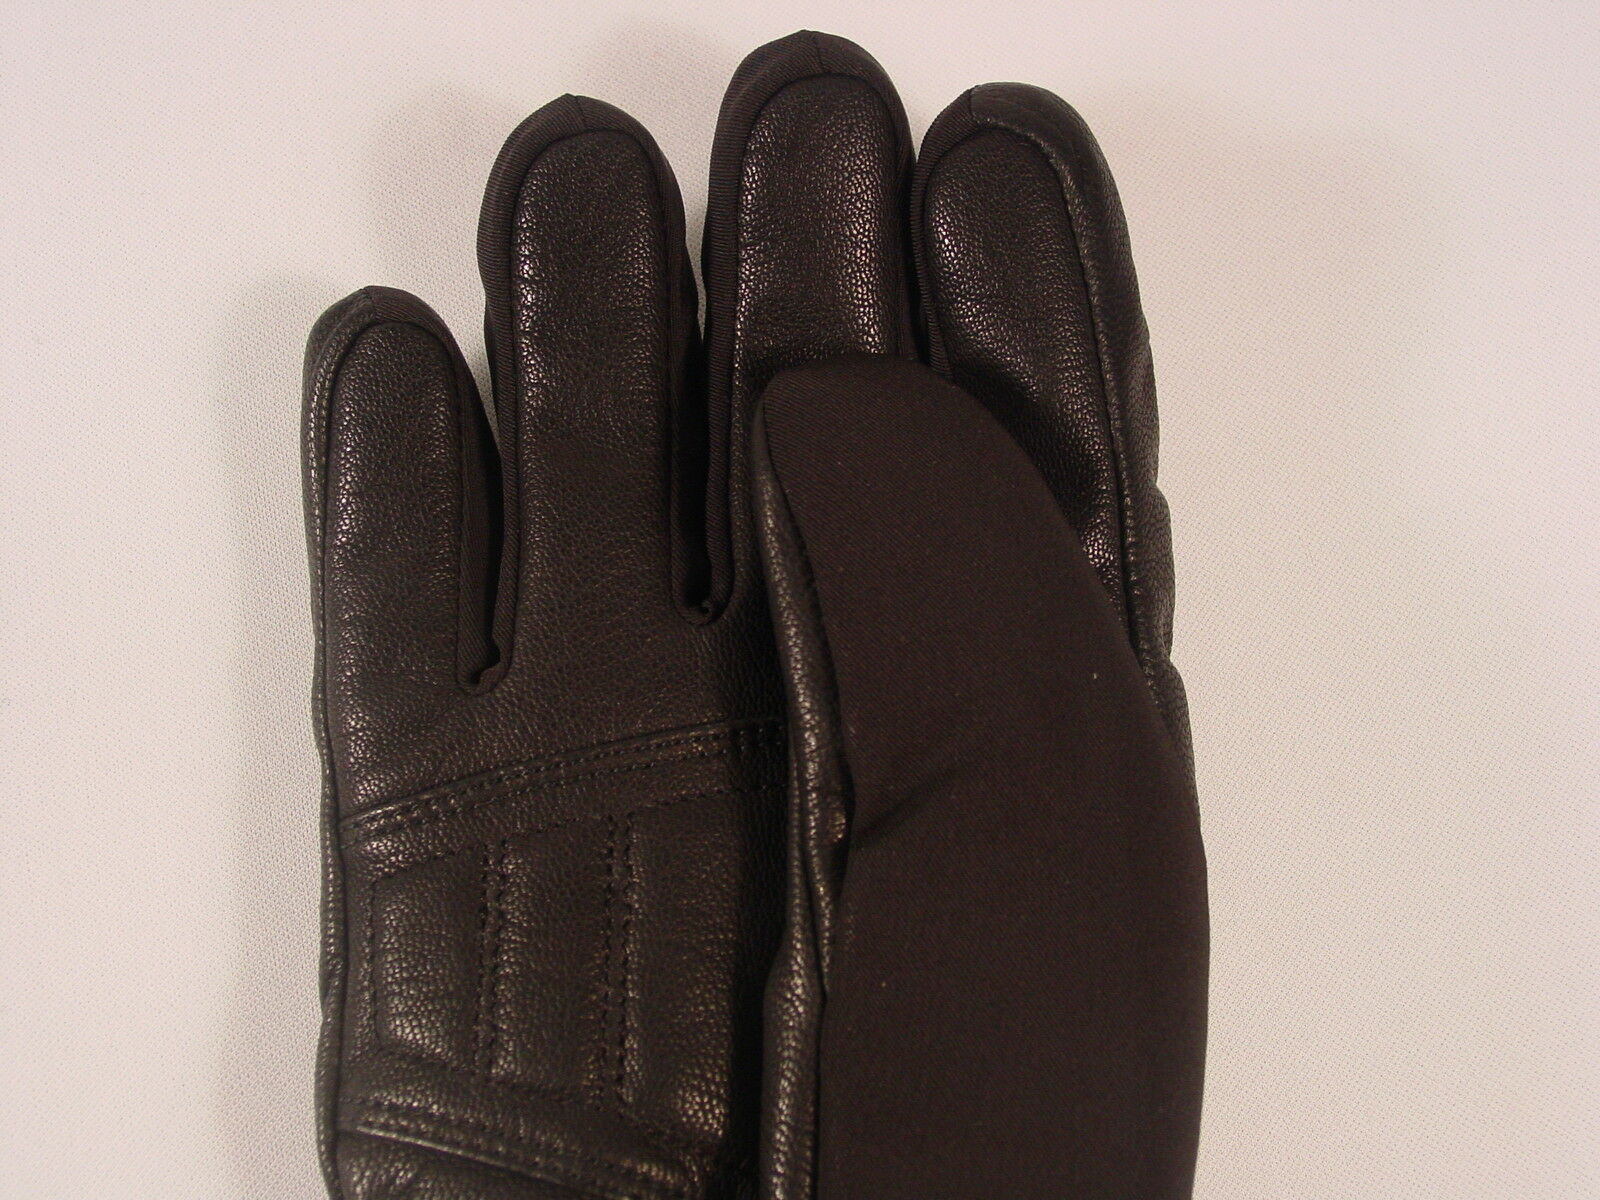 New Reusch Modus Gore Tex Ski Leder & Softshell Gloves Medium Medium Gloves (8.5)  4001381 99681a